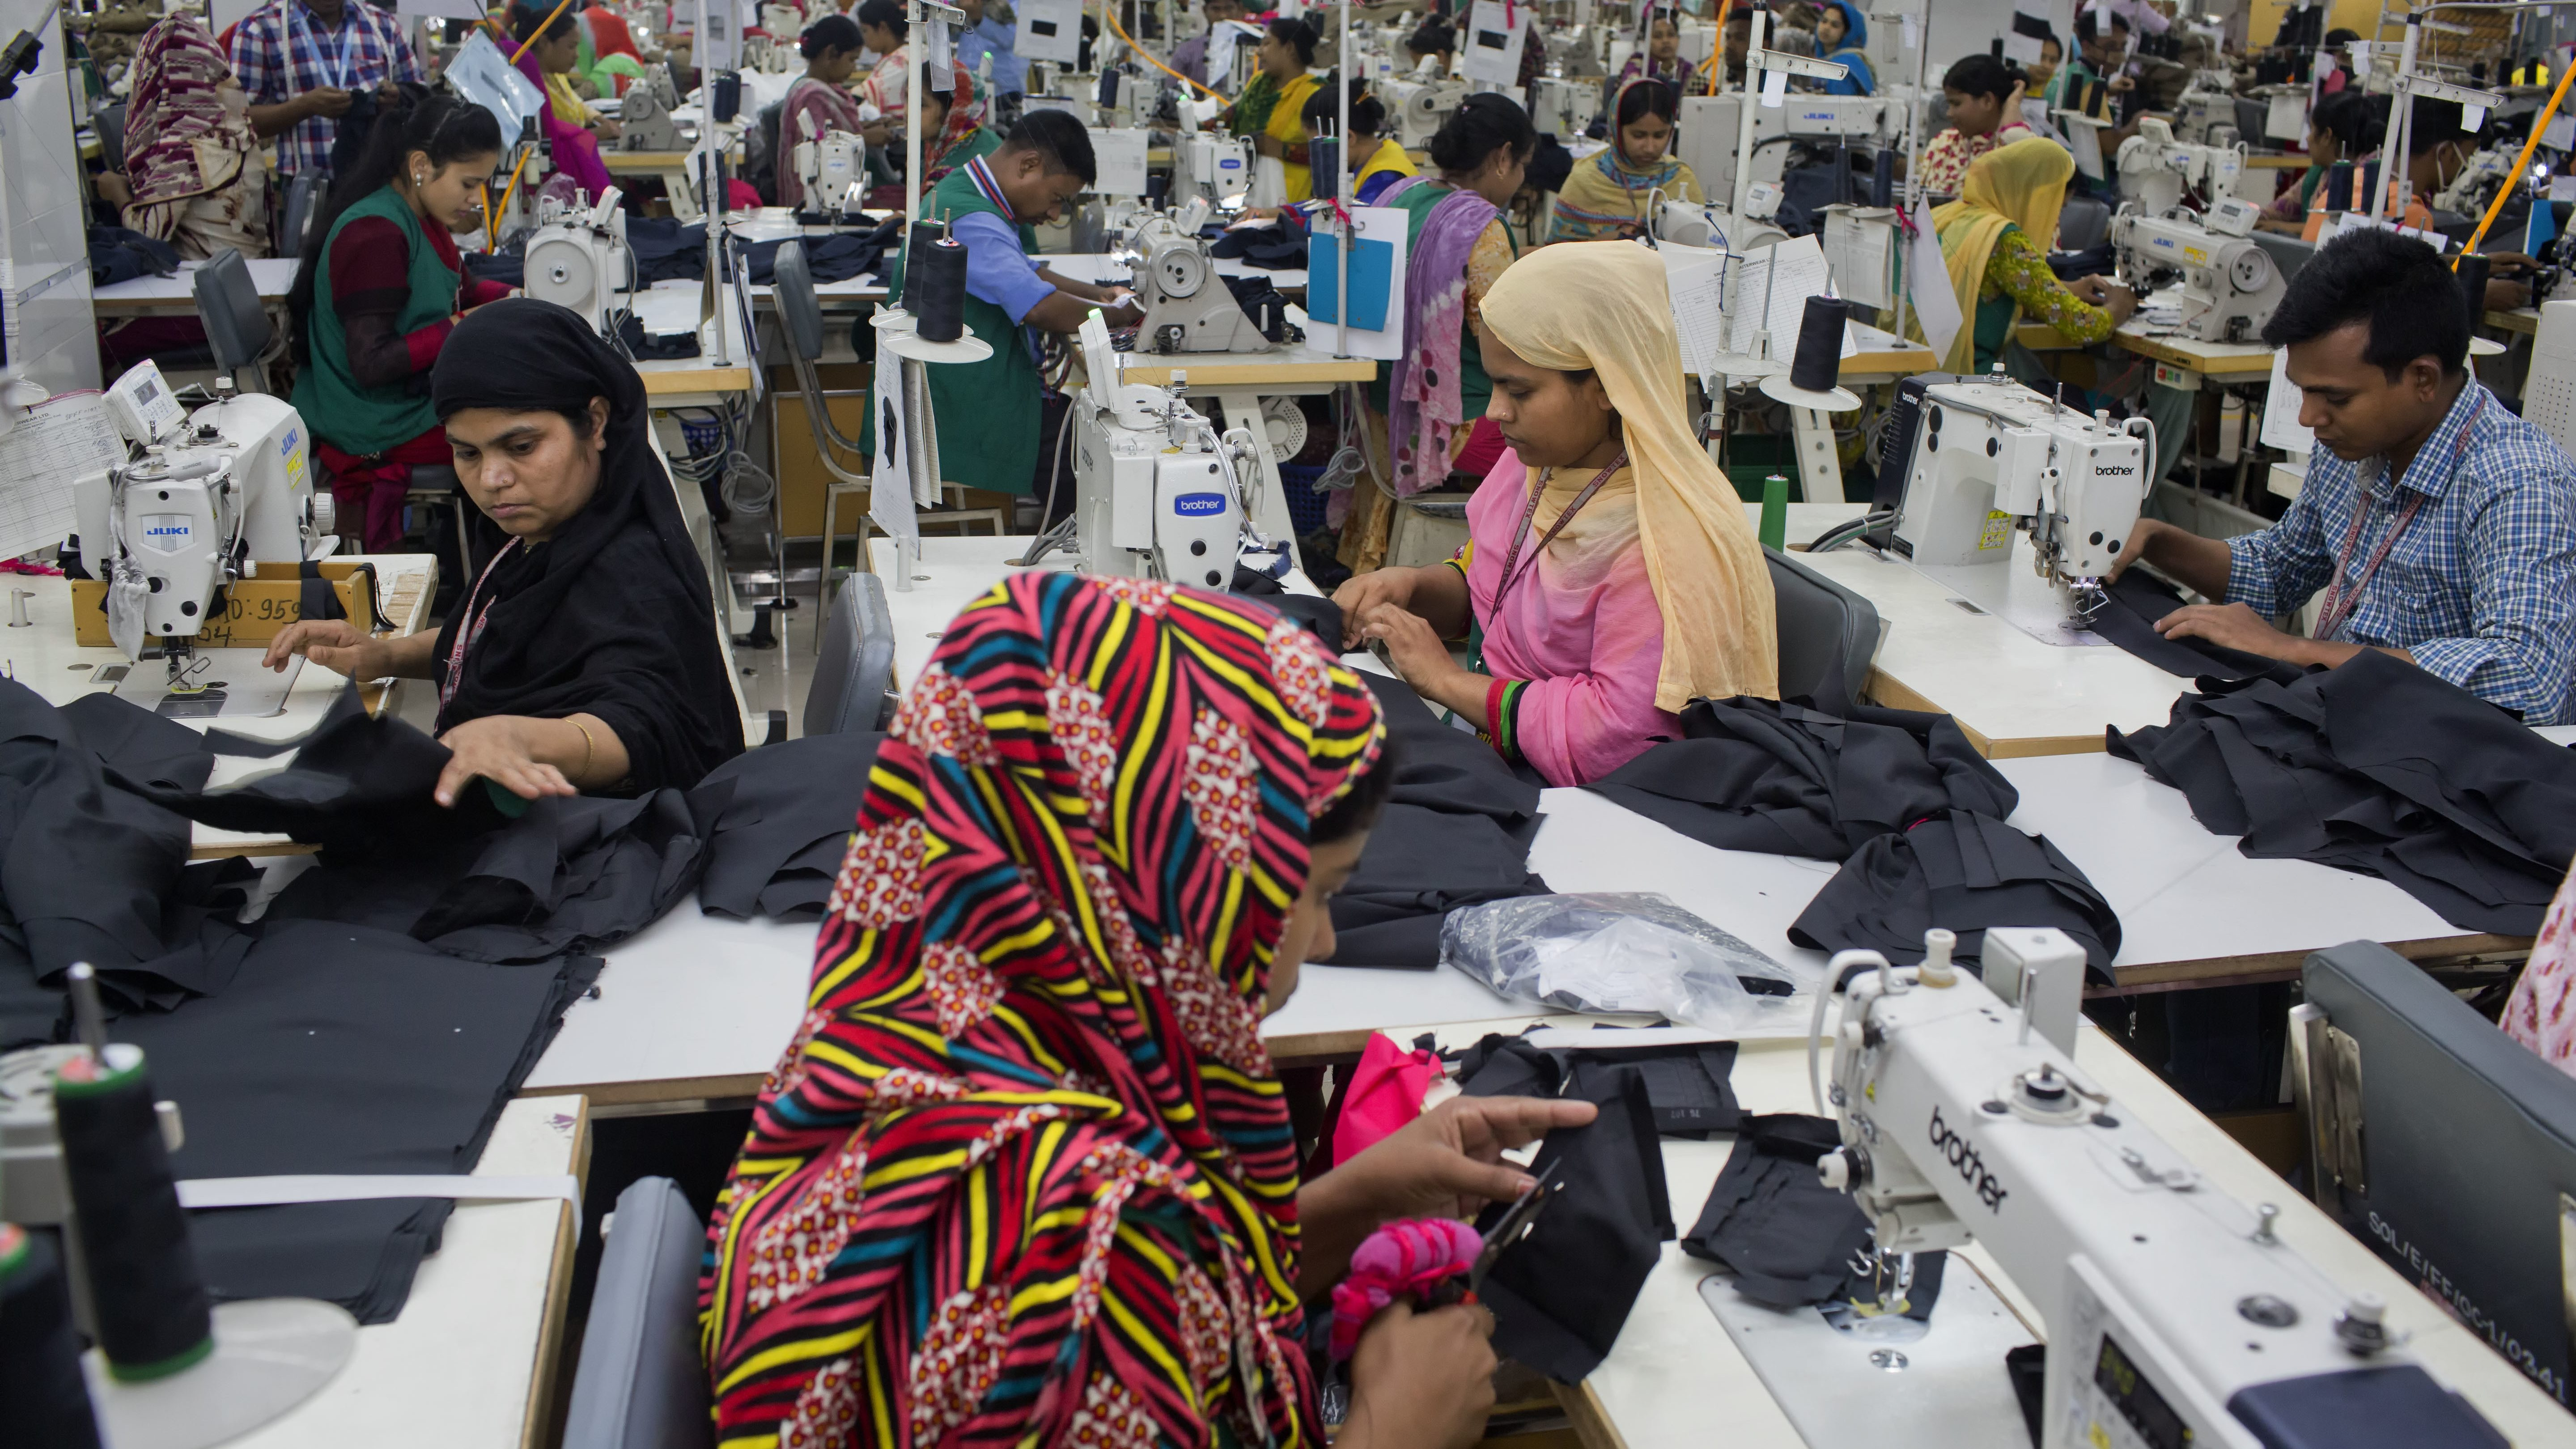 Covid 19 Leads To One Million Garment Workers Unemployed Quartz